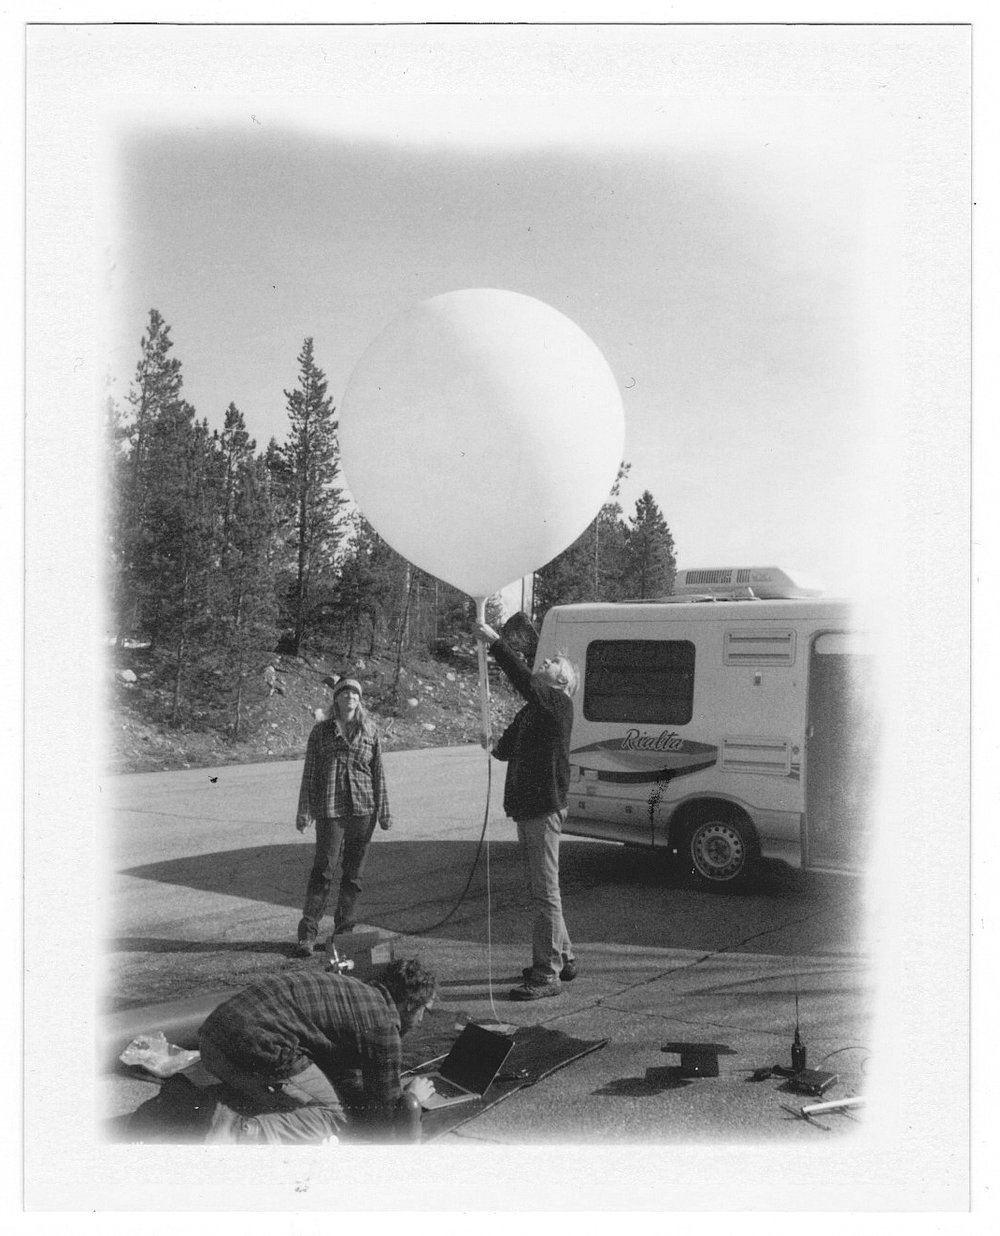 Balloon Launch FP-3000B.jpg